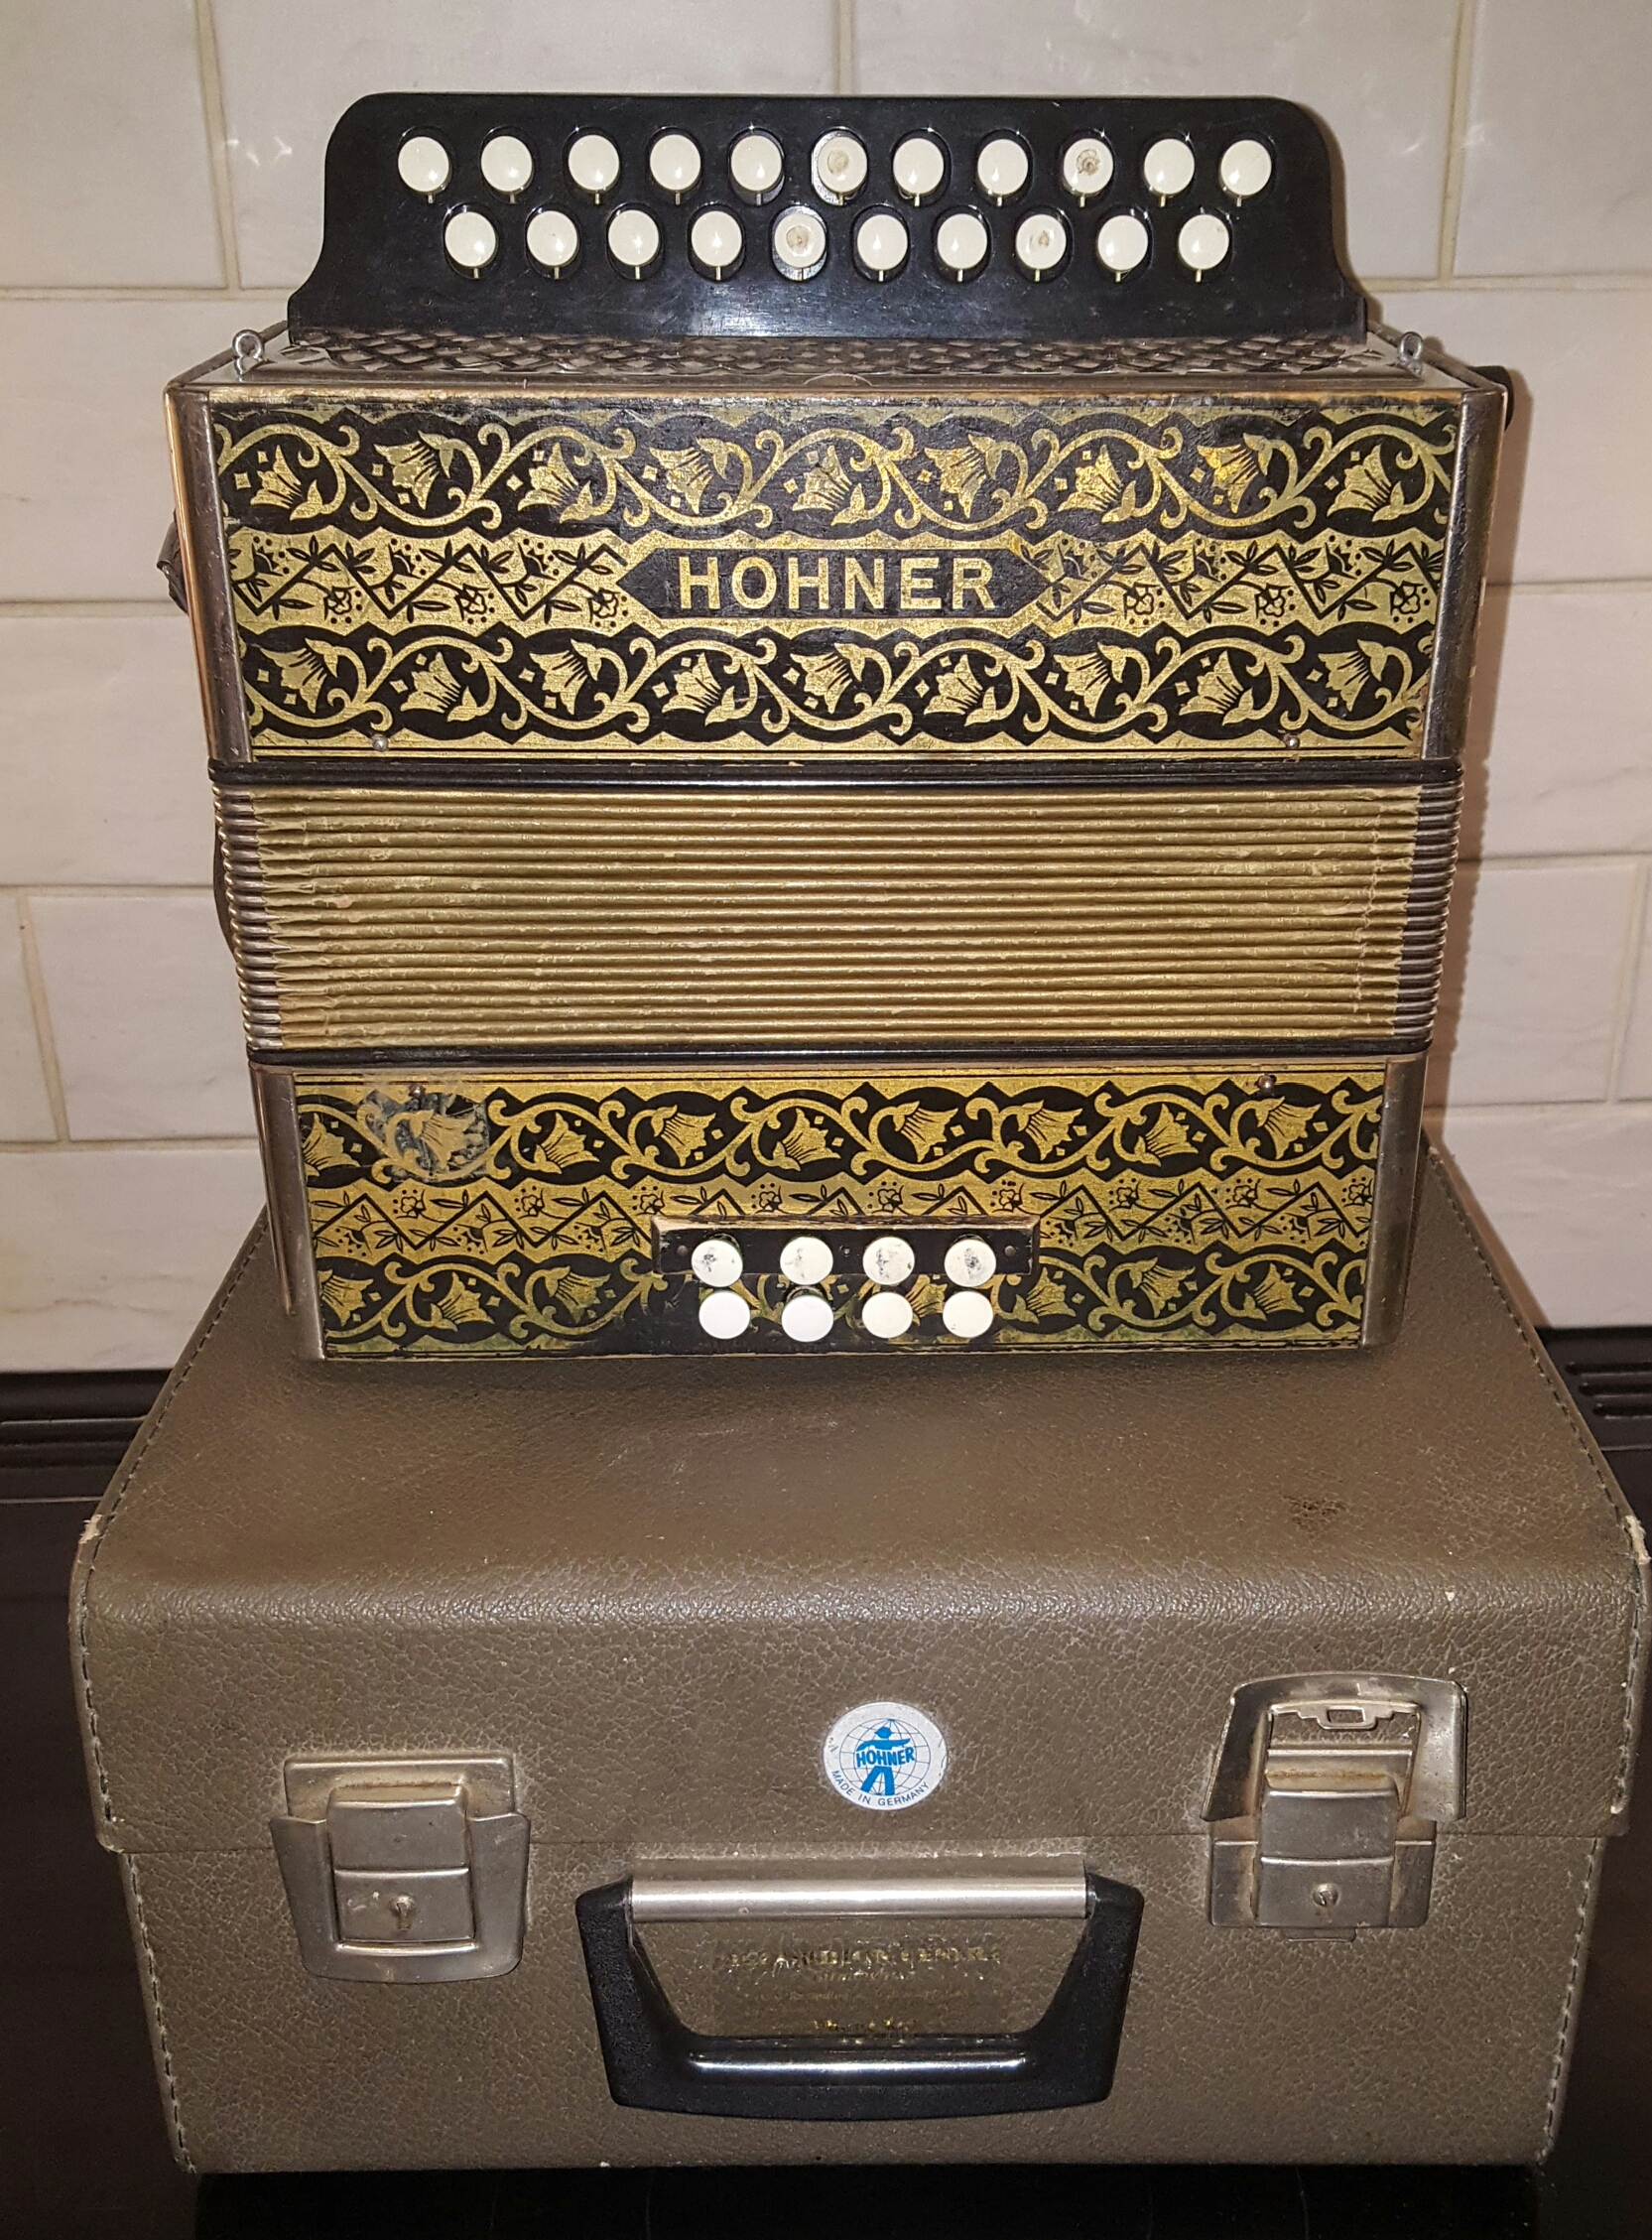 Lot 35 - Piano Accordion Hohner